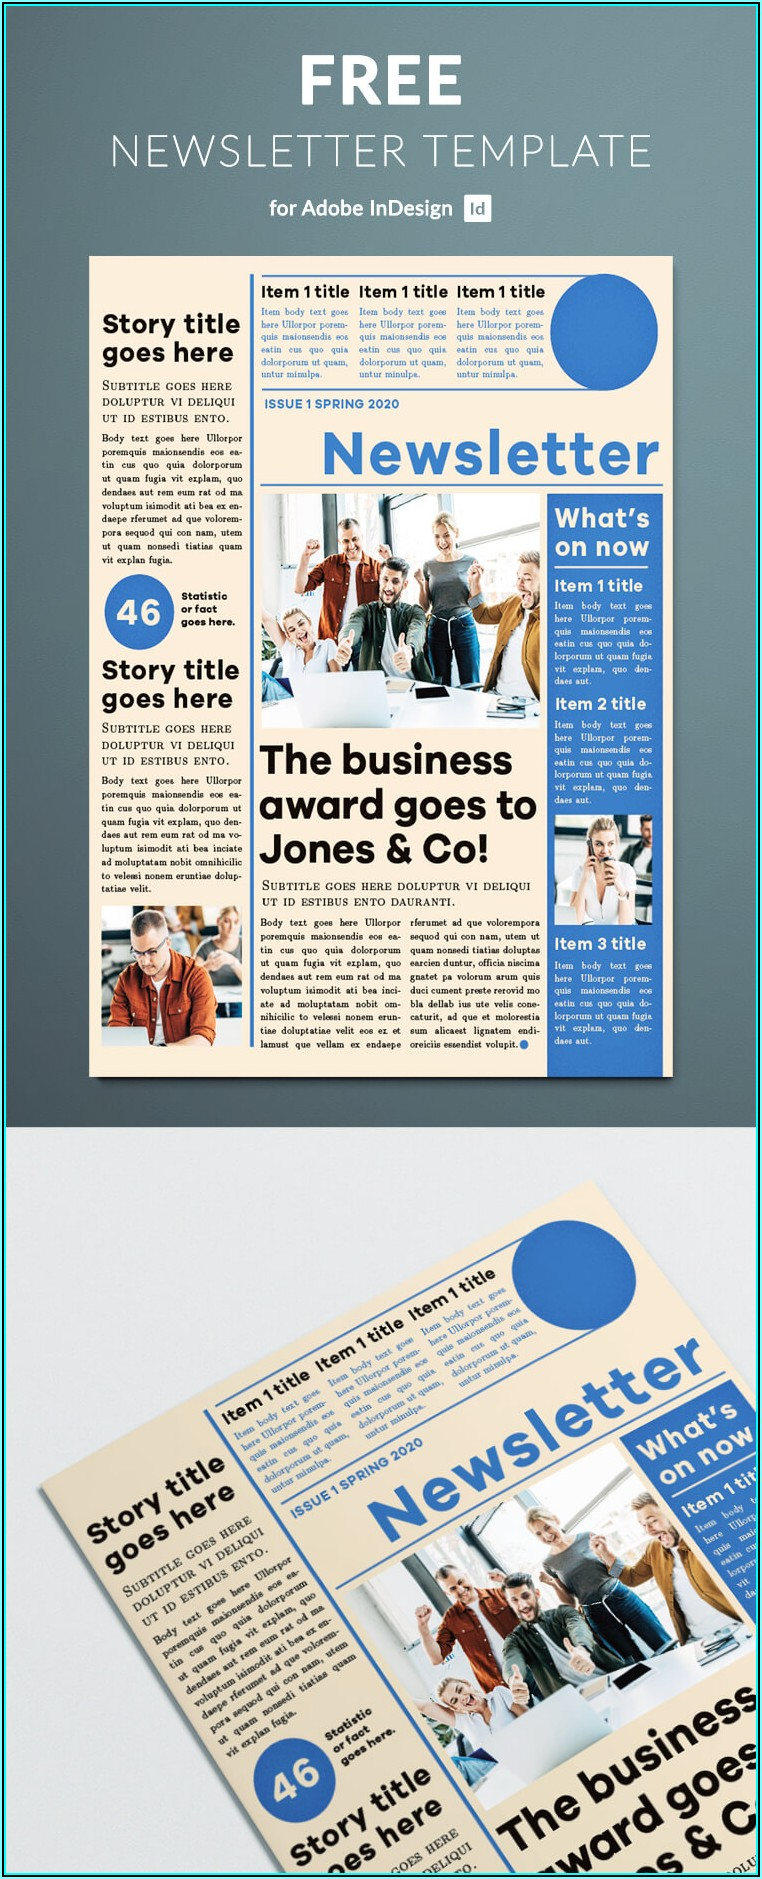 How To Create A Newsletter Template In Adobe Indesign